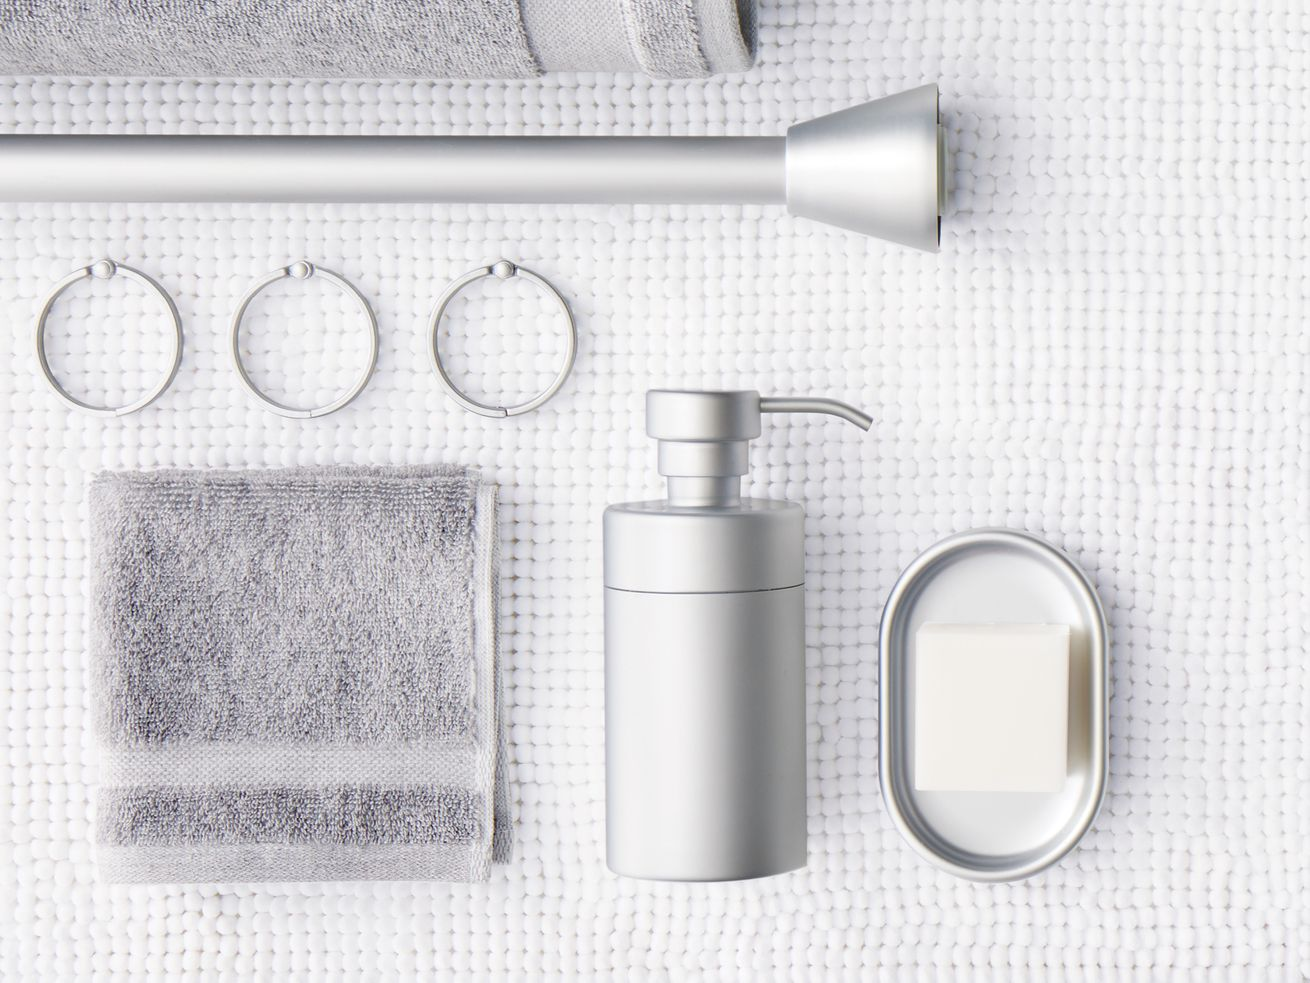 See how Target?s new minimalist home goods line compares to Ikea and Muji products